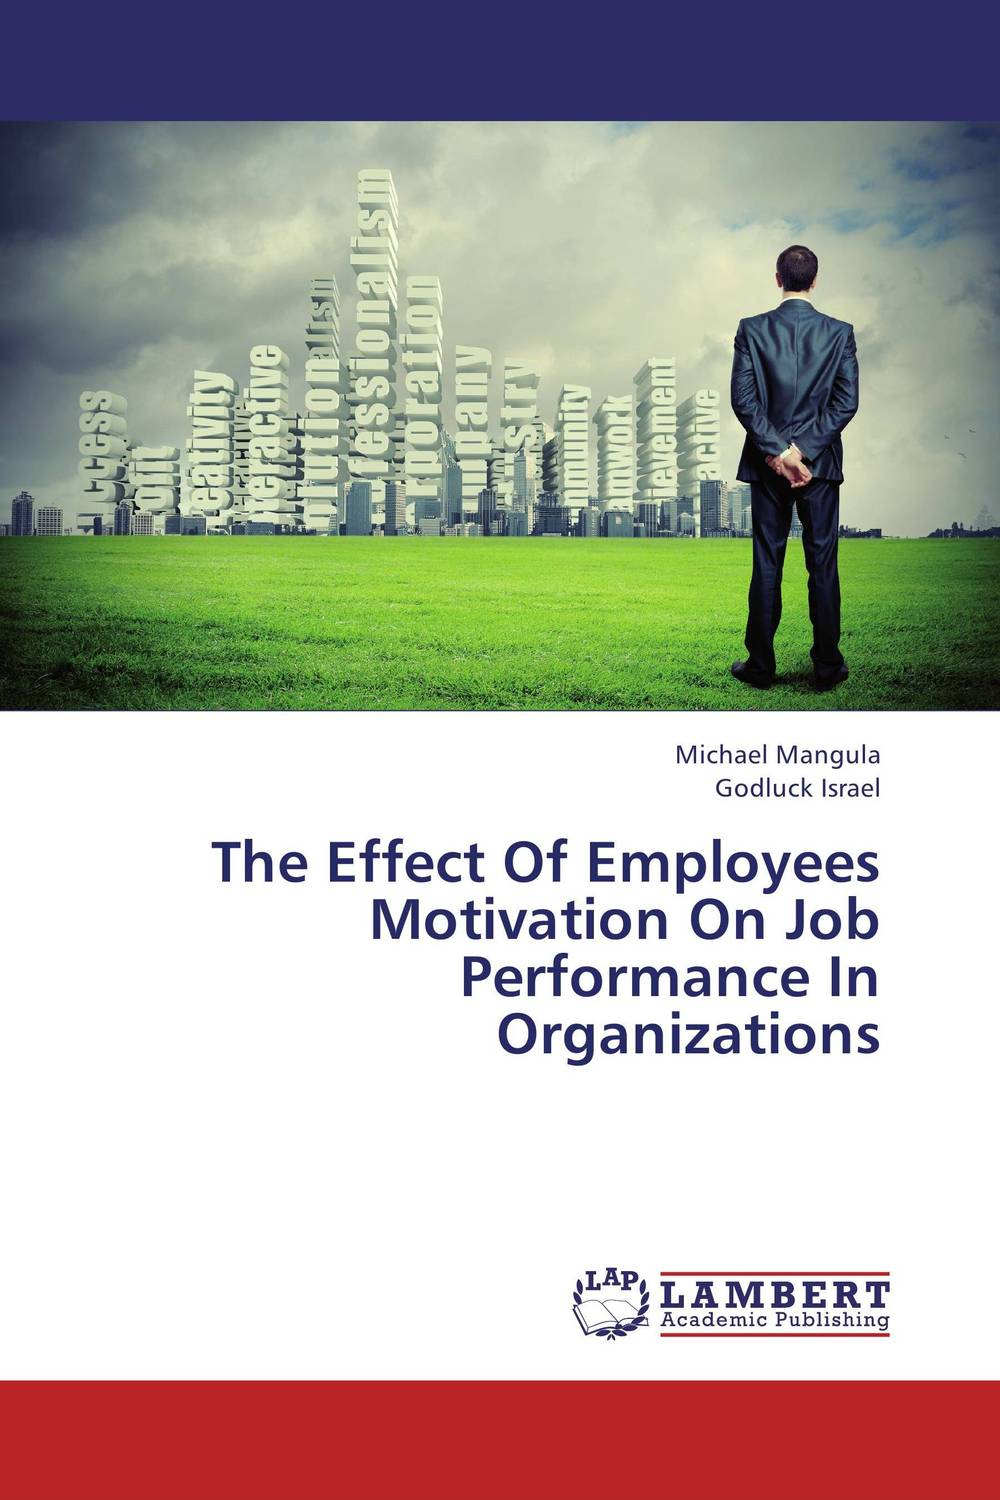 The Effect Of Employees Motivation On Job Performance In Organizations mick johnson motivation is at